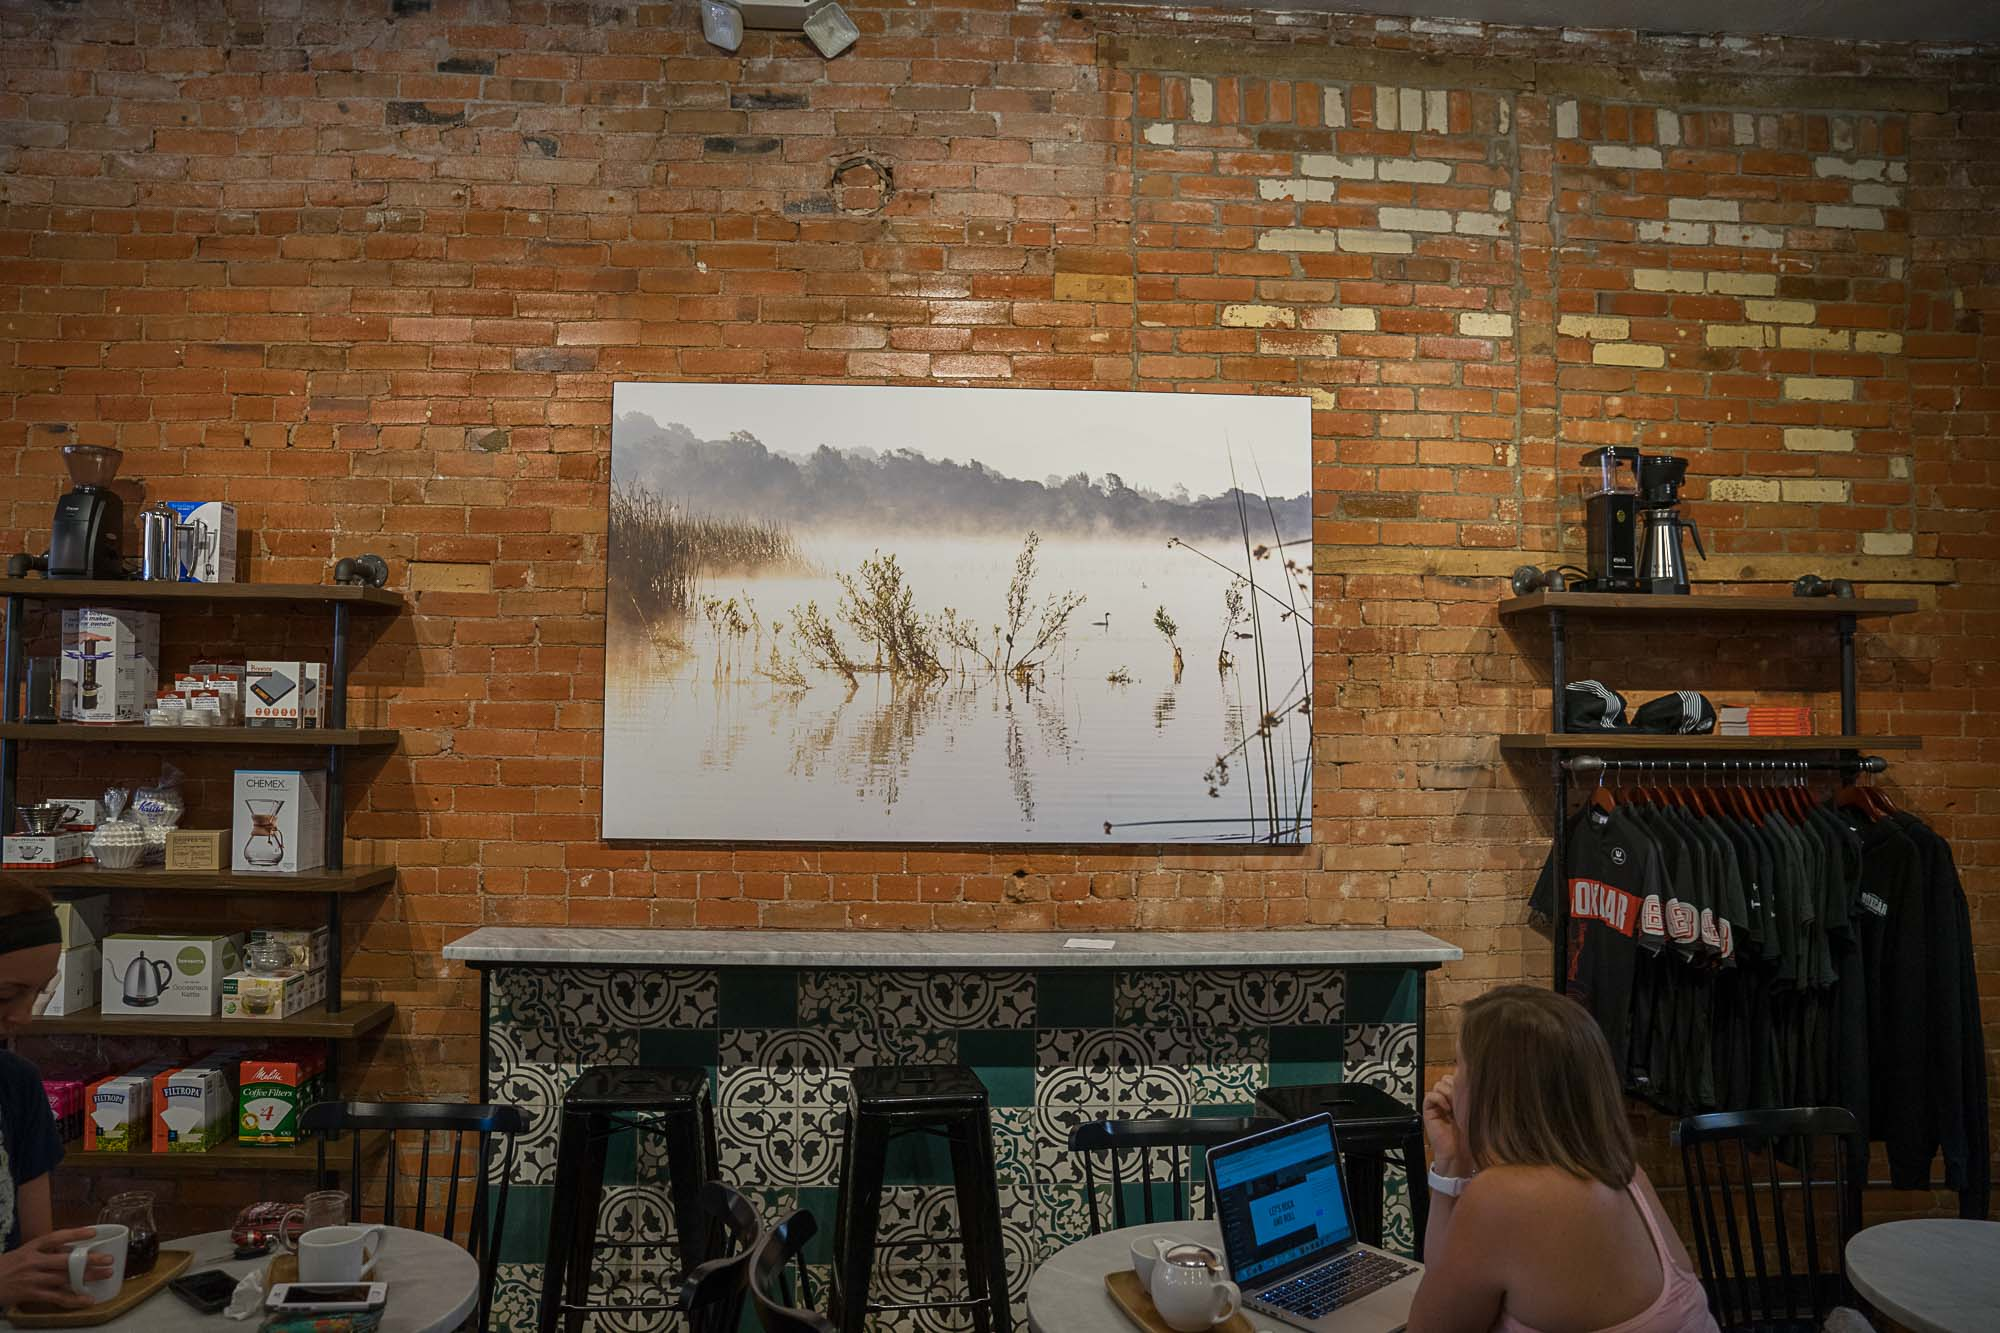 Art hanging on the walls at Boxcar Coffee Roasters in Boulder, Colorado.